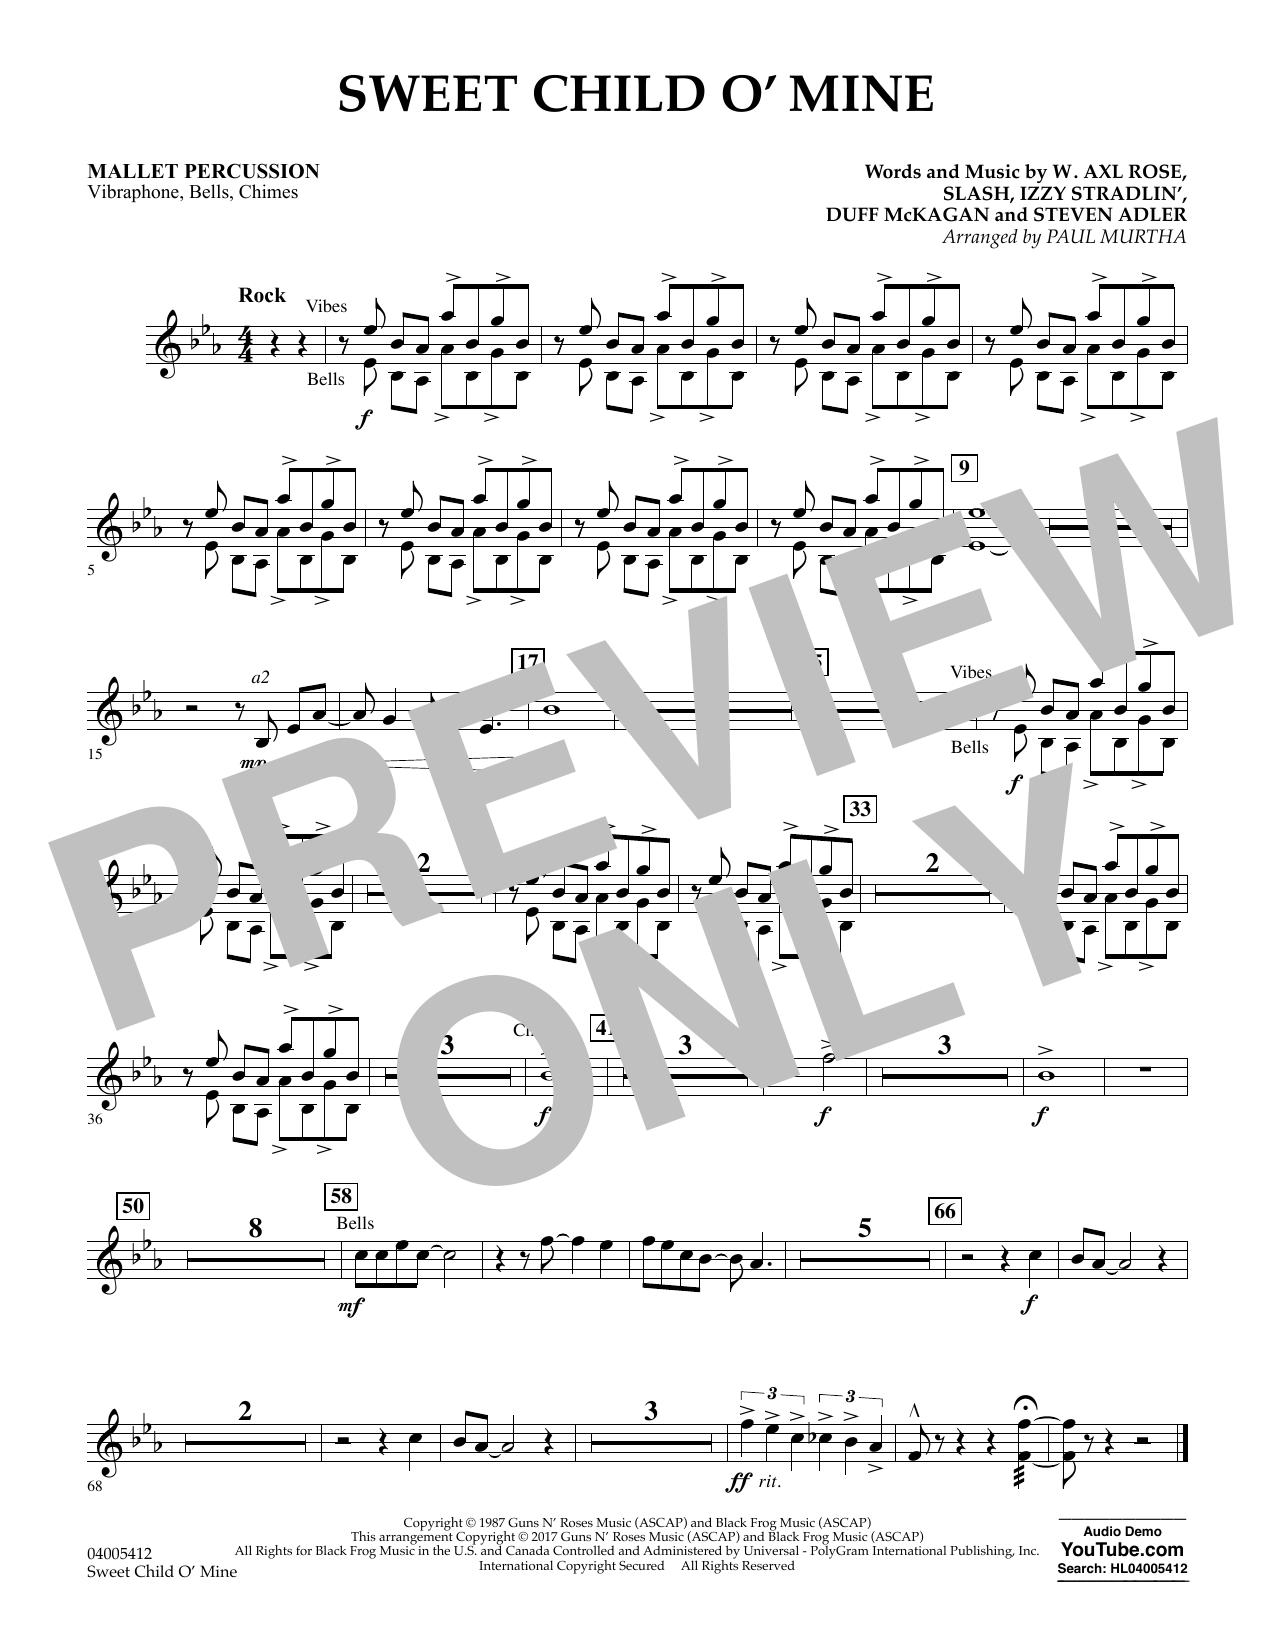 Sweet Child o' Mine - Mallet Percussion (Concert Band)